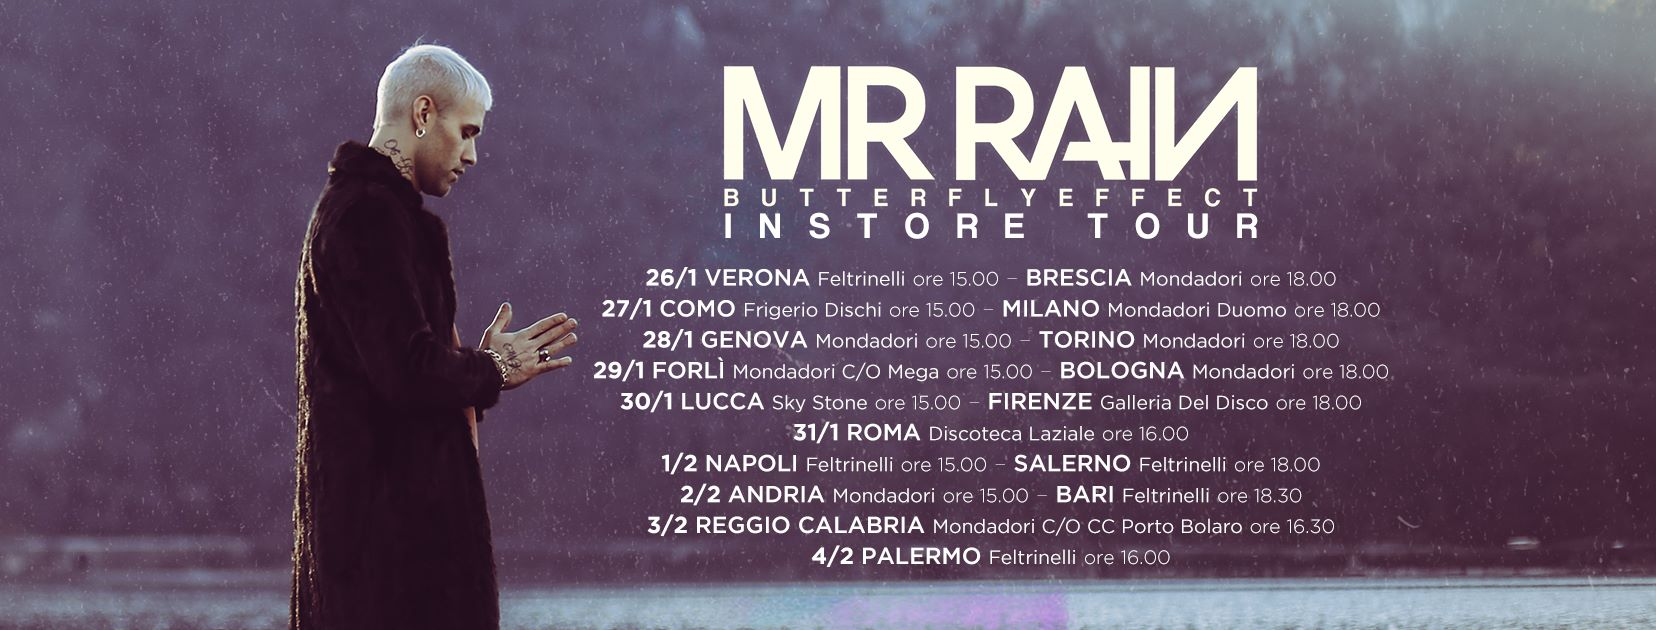 mr rain firmacopie a la feltrinelli di bari butterfly effect instore tour camin vattin. Black Bedroom Furniture Sets. Home Design Ideas